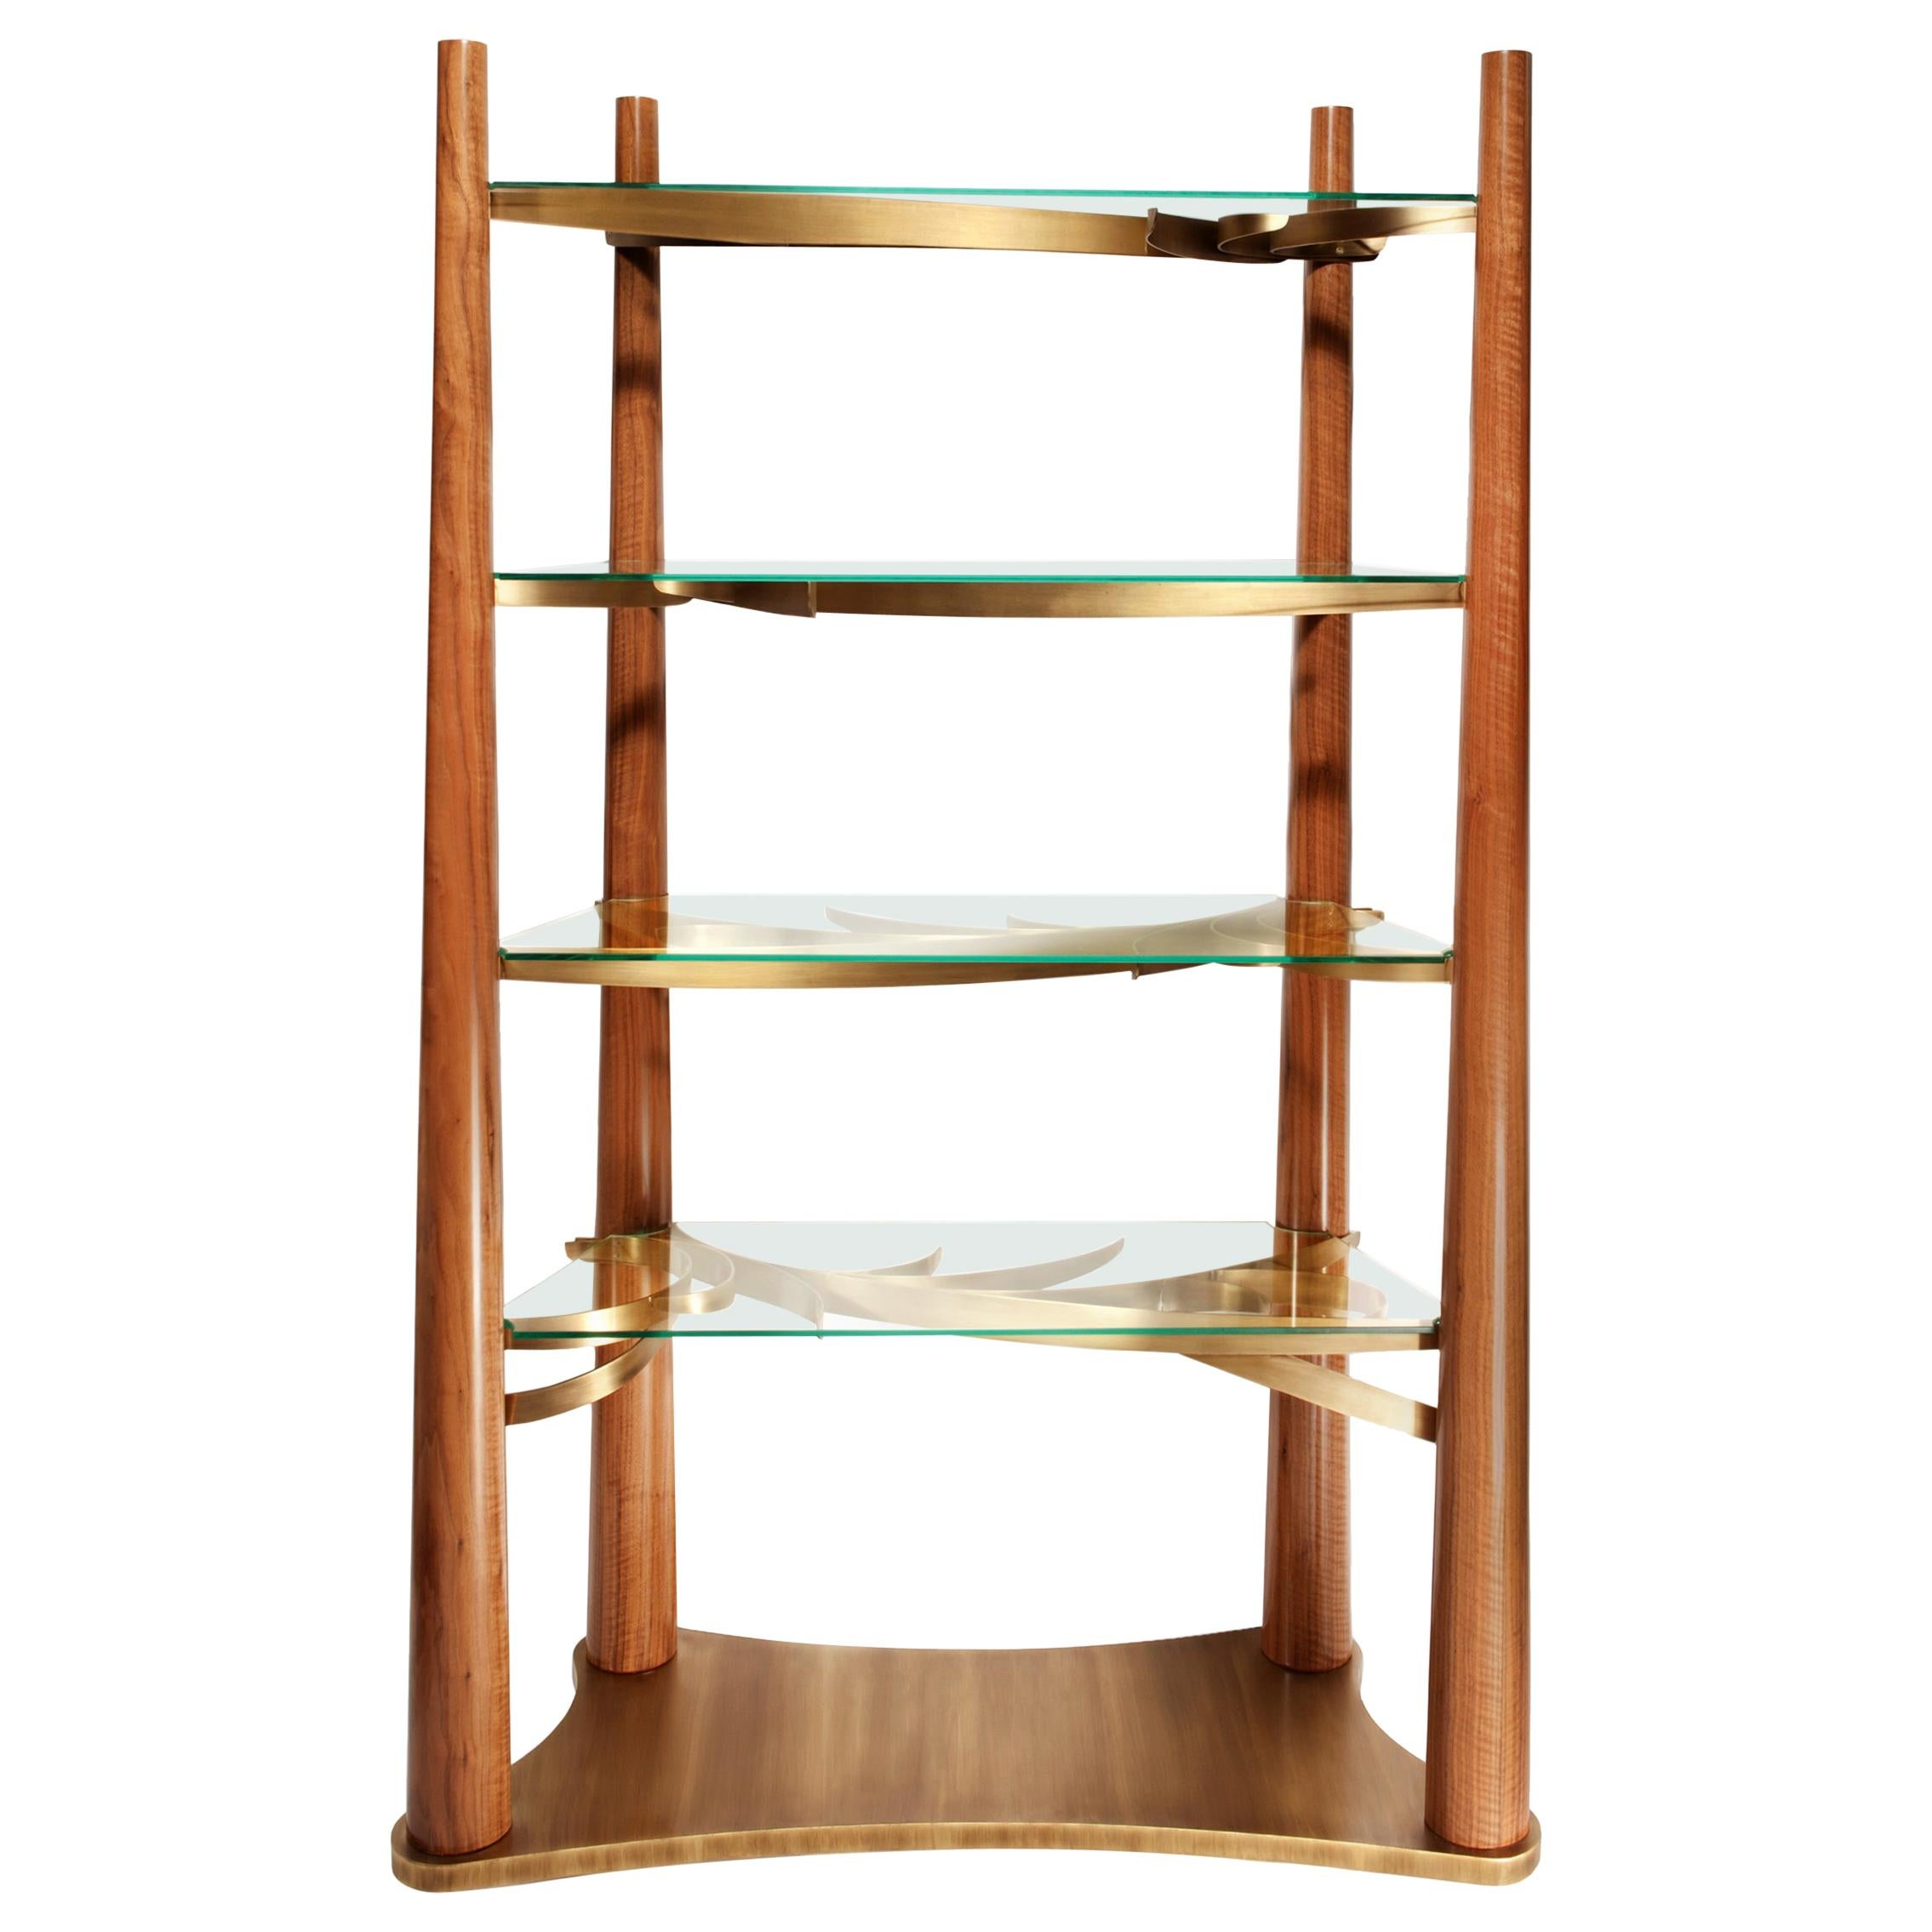 Into the Woods Bookcase, Walnut and Brass, Insidherland by Joana Santos Barbosa